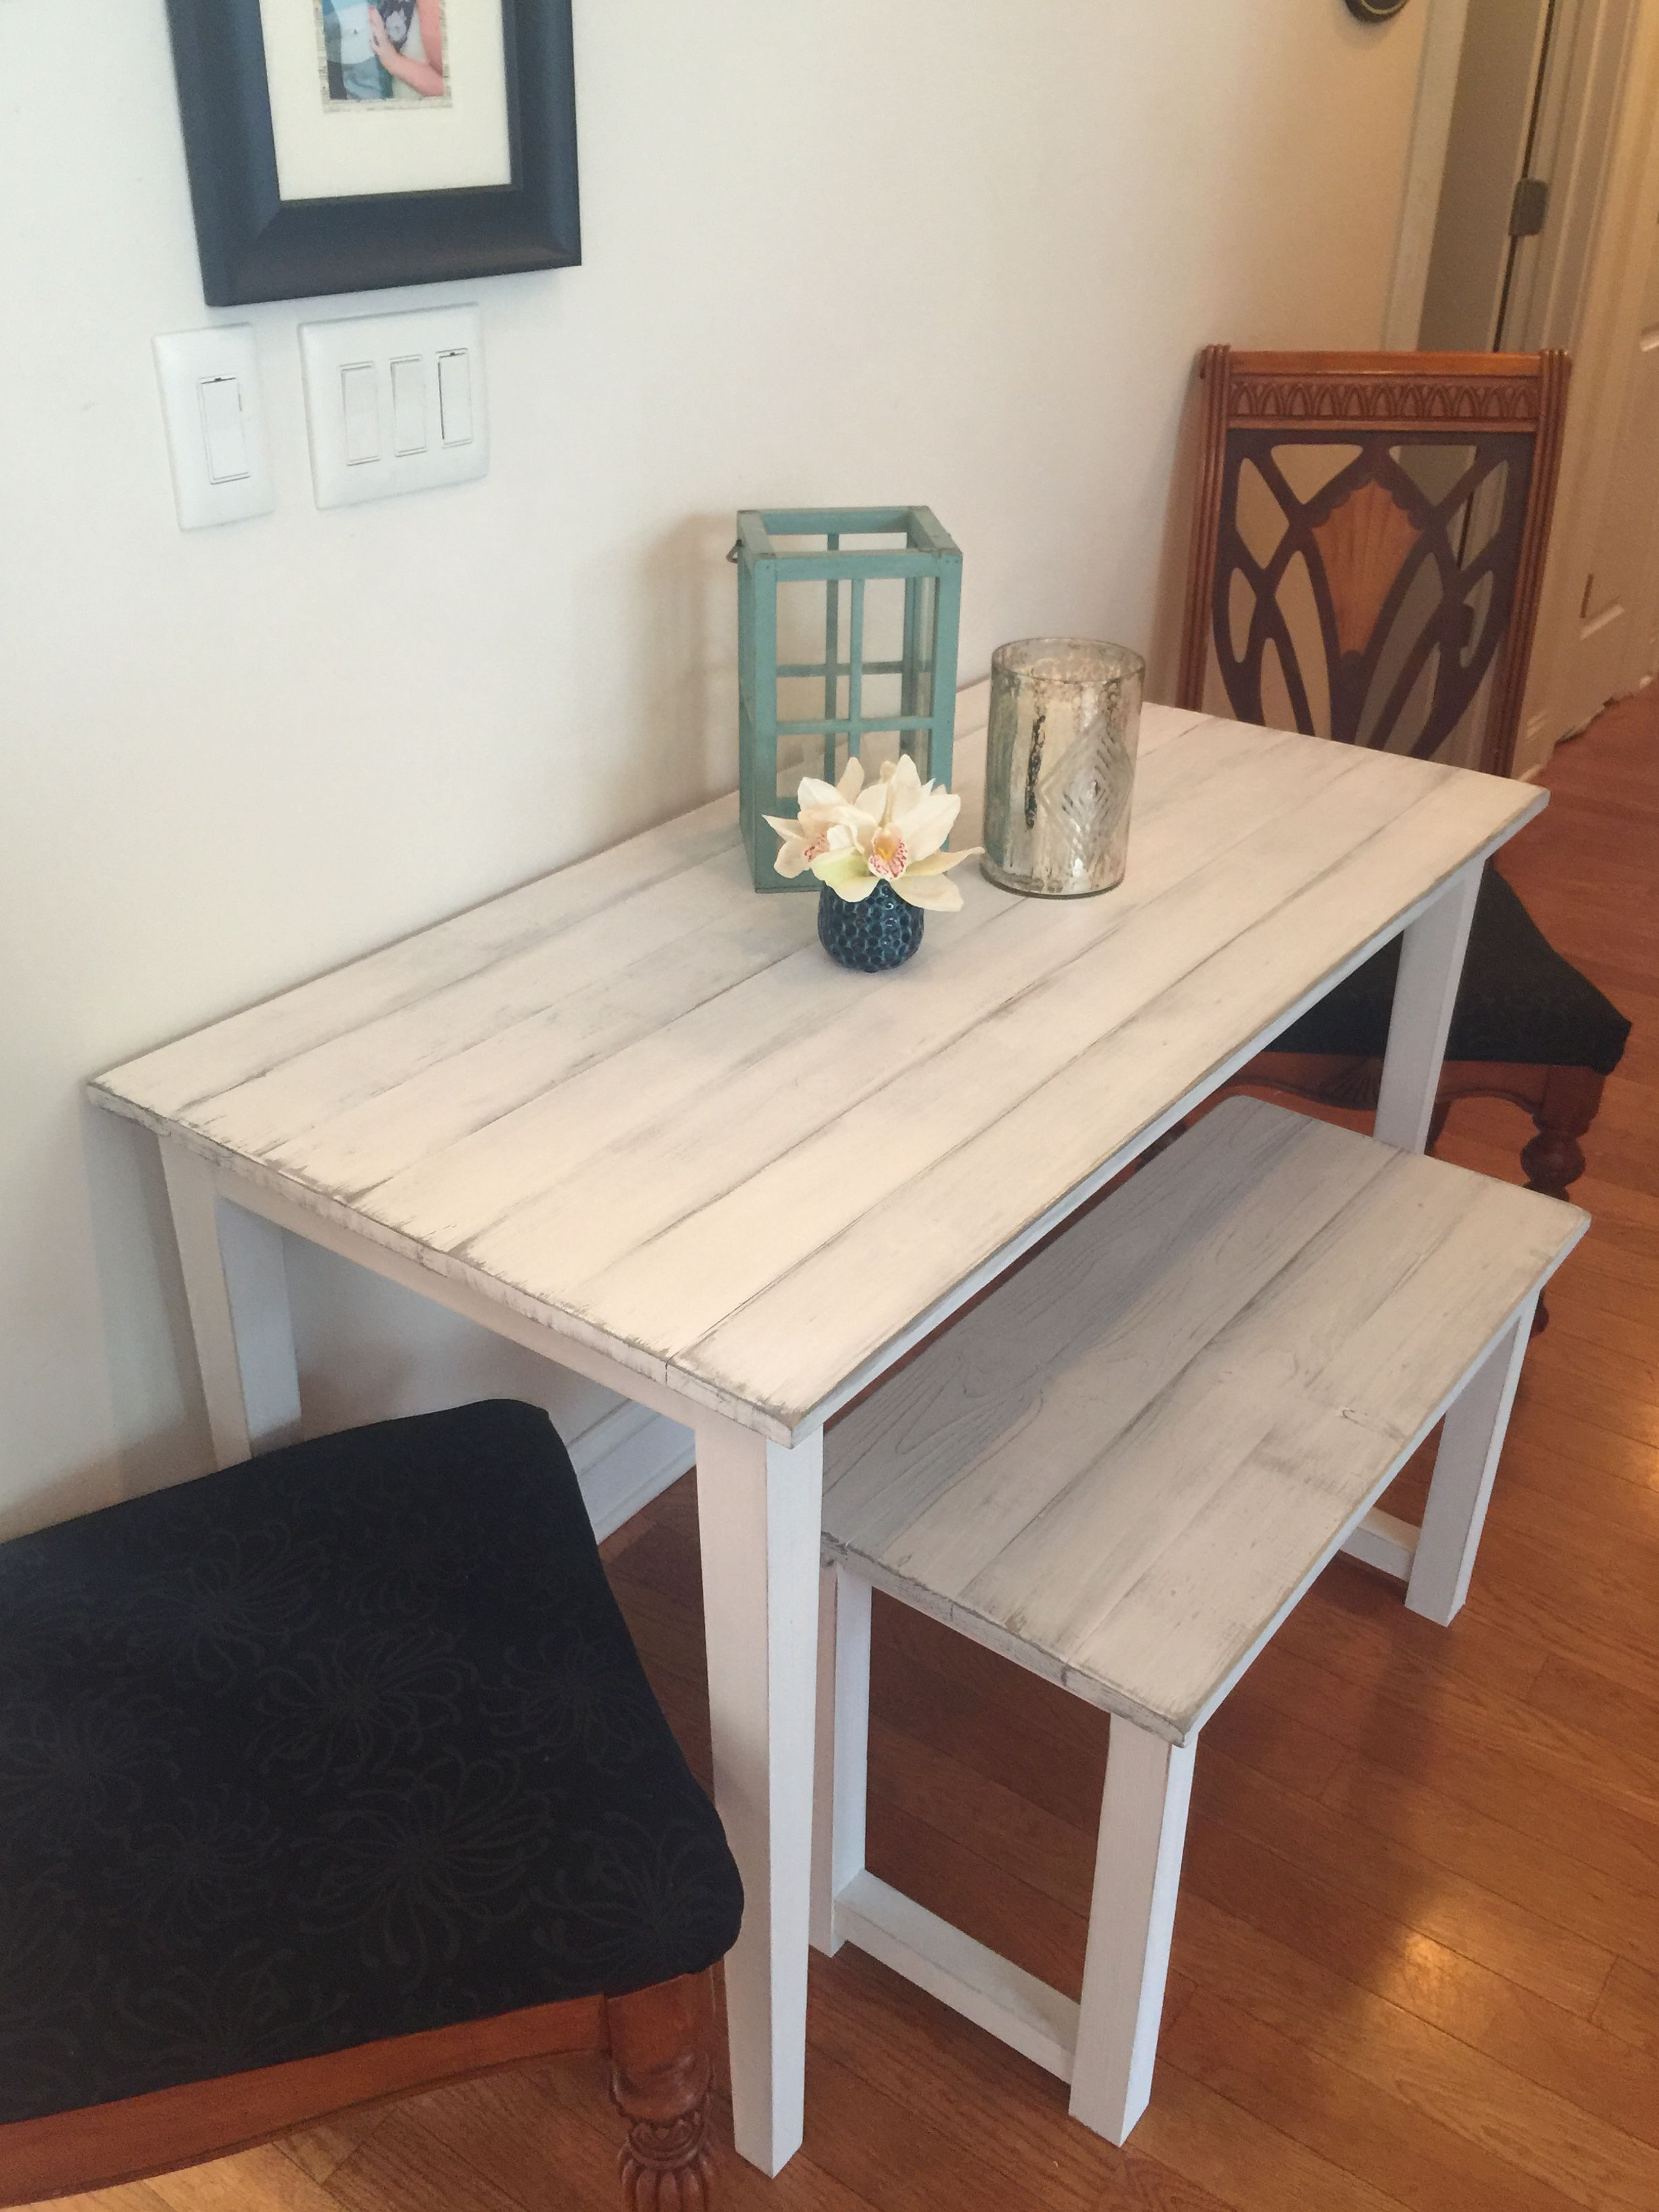 Best Small Farmhouse Table For Small Room Bench And Distressed 400 x 300